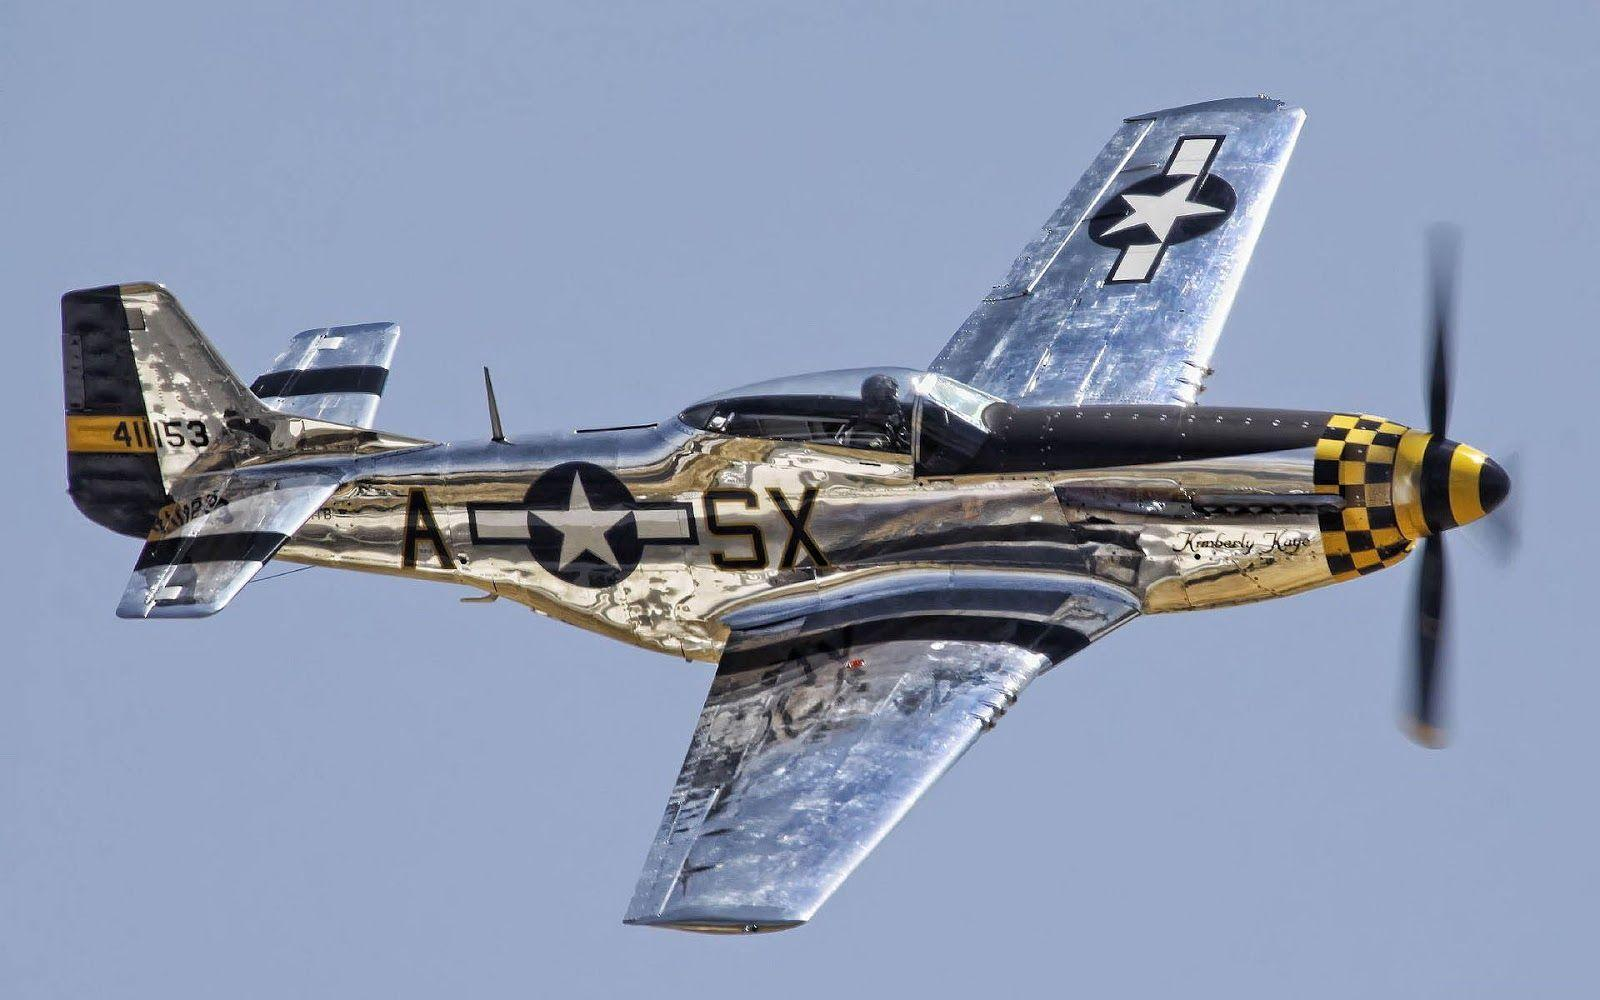 P 51 Mustang Wallpapers – 1600×1000 High Definition Wallpapers